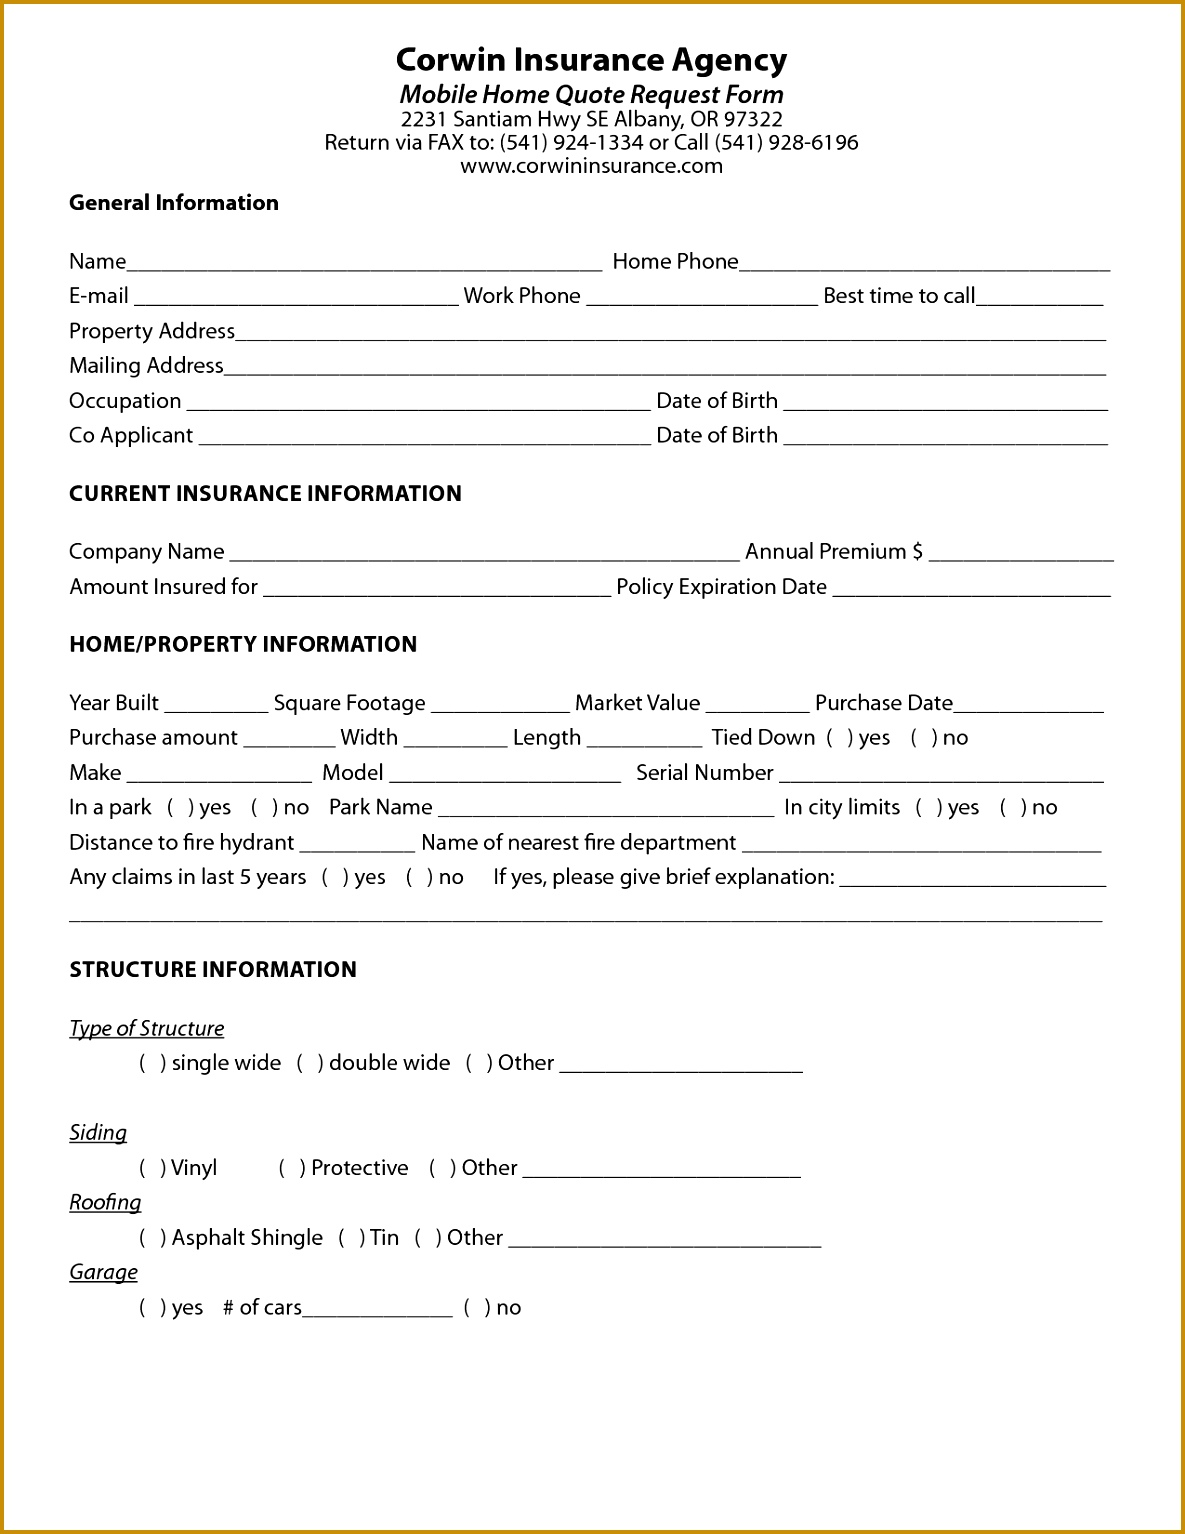 Construction Material Request Form Template 03662 Free Quote Form